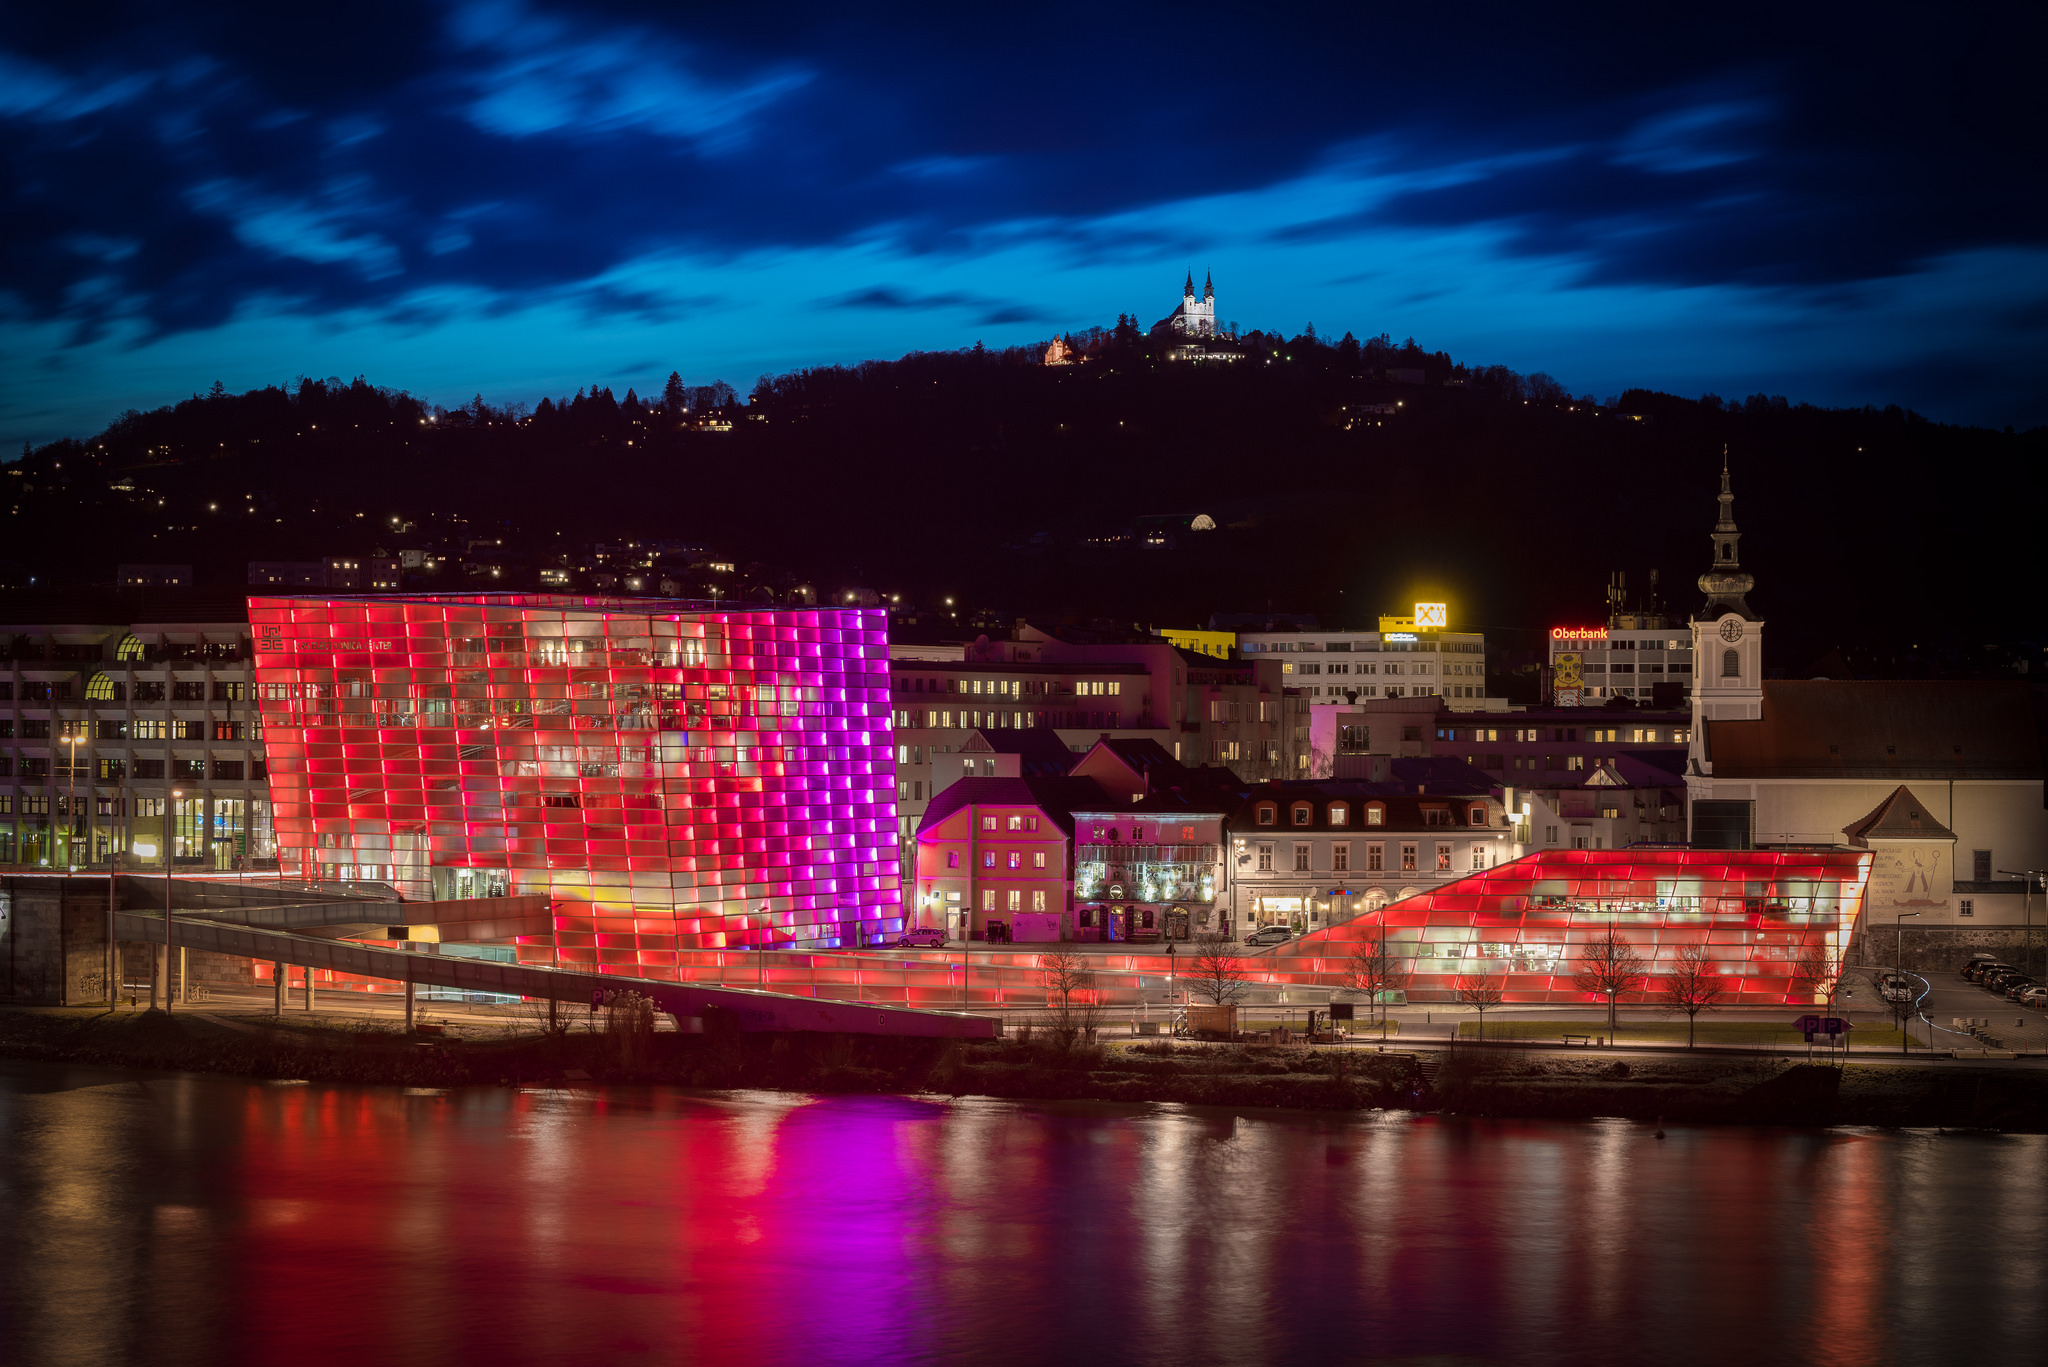 ARS ELECTRONICA Center, Linz, Austria. Photo credit, Ars Electronica / Robert Bauernhansl.